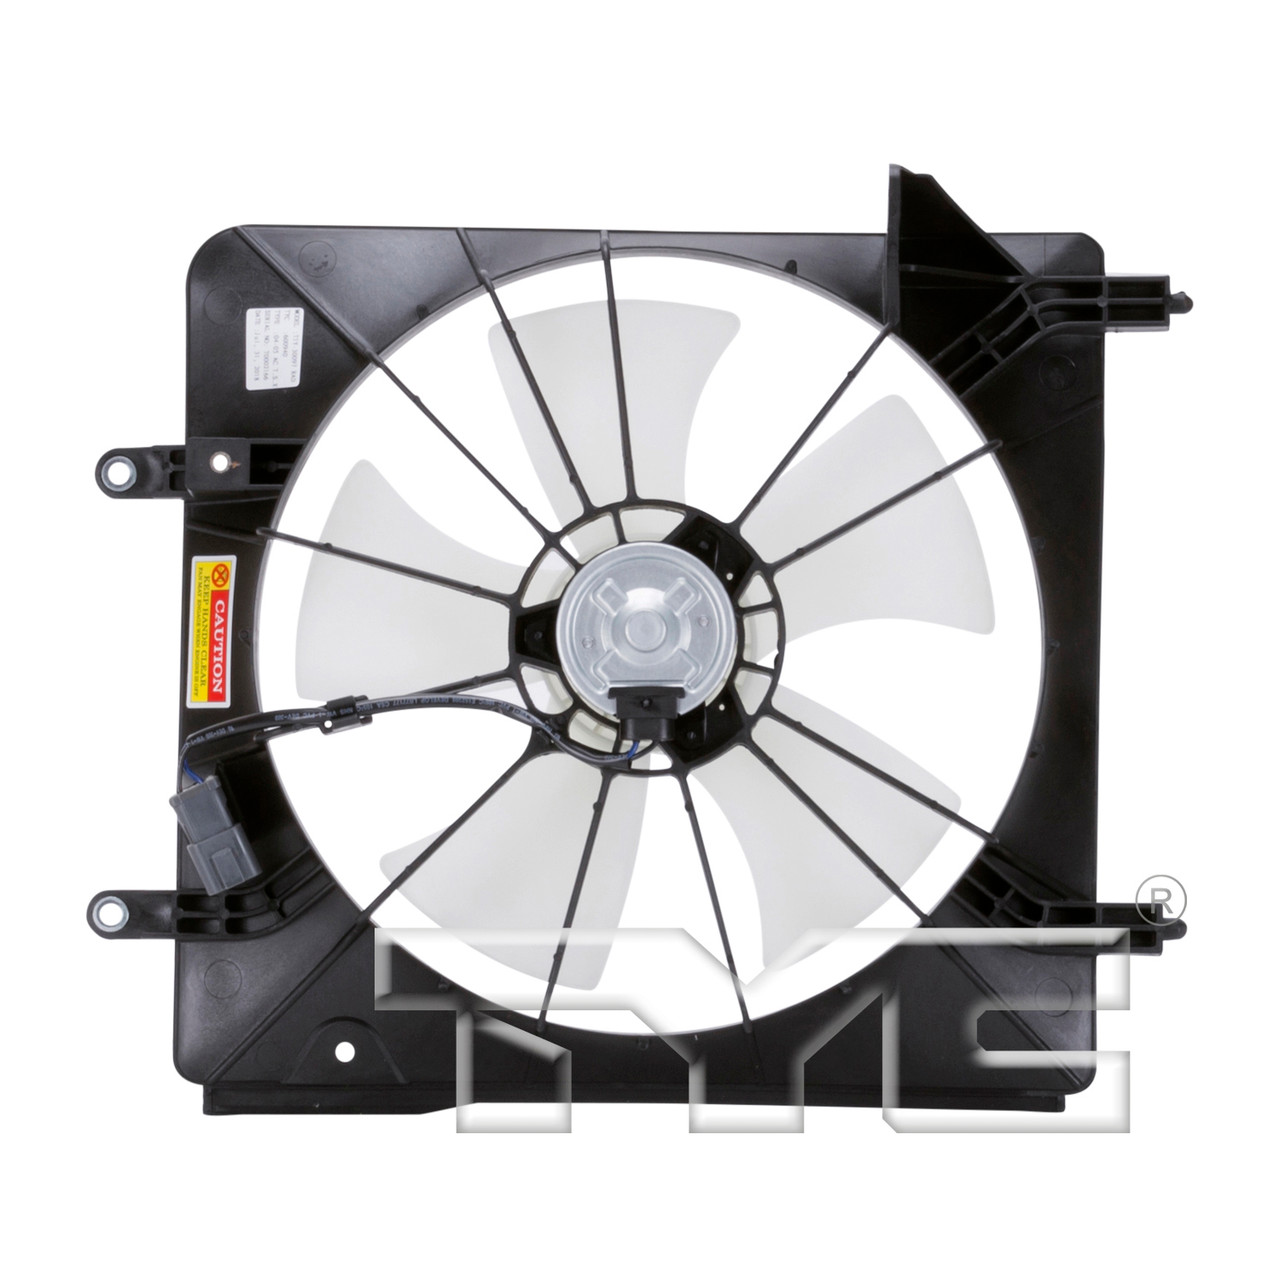 2006 Acura TSX Engine Cooling Fan Assembly-GS39424